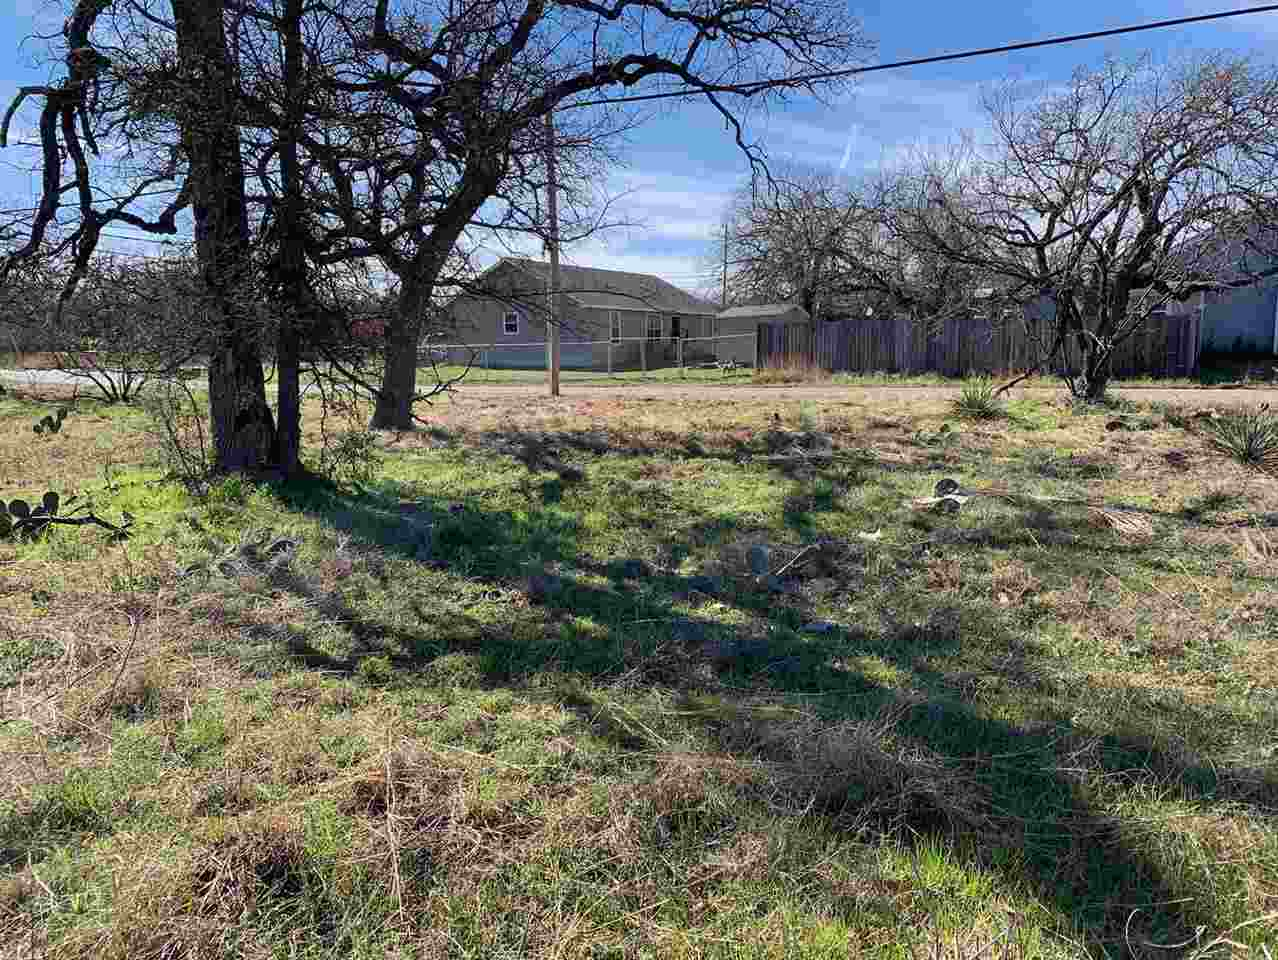 Located in the Sherwood Manor community of Granite Shoals, these four lots rests on a peaceful street, Envision your custom home built upon this beautiful location with Hill Country views and private surroundings. These lots are located minutes away from the shores of the lake and public boat ramps, so grab your fishing gear, your kayak, or your swimming suit, and head over for a fun filled day on the water. Life doesn't get any better than this!